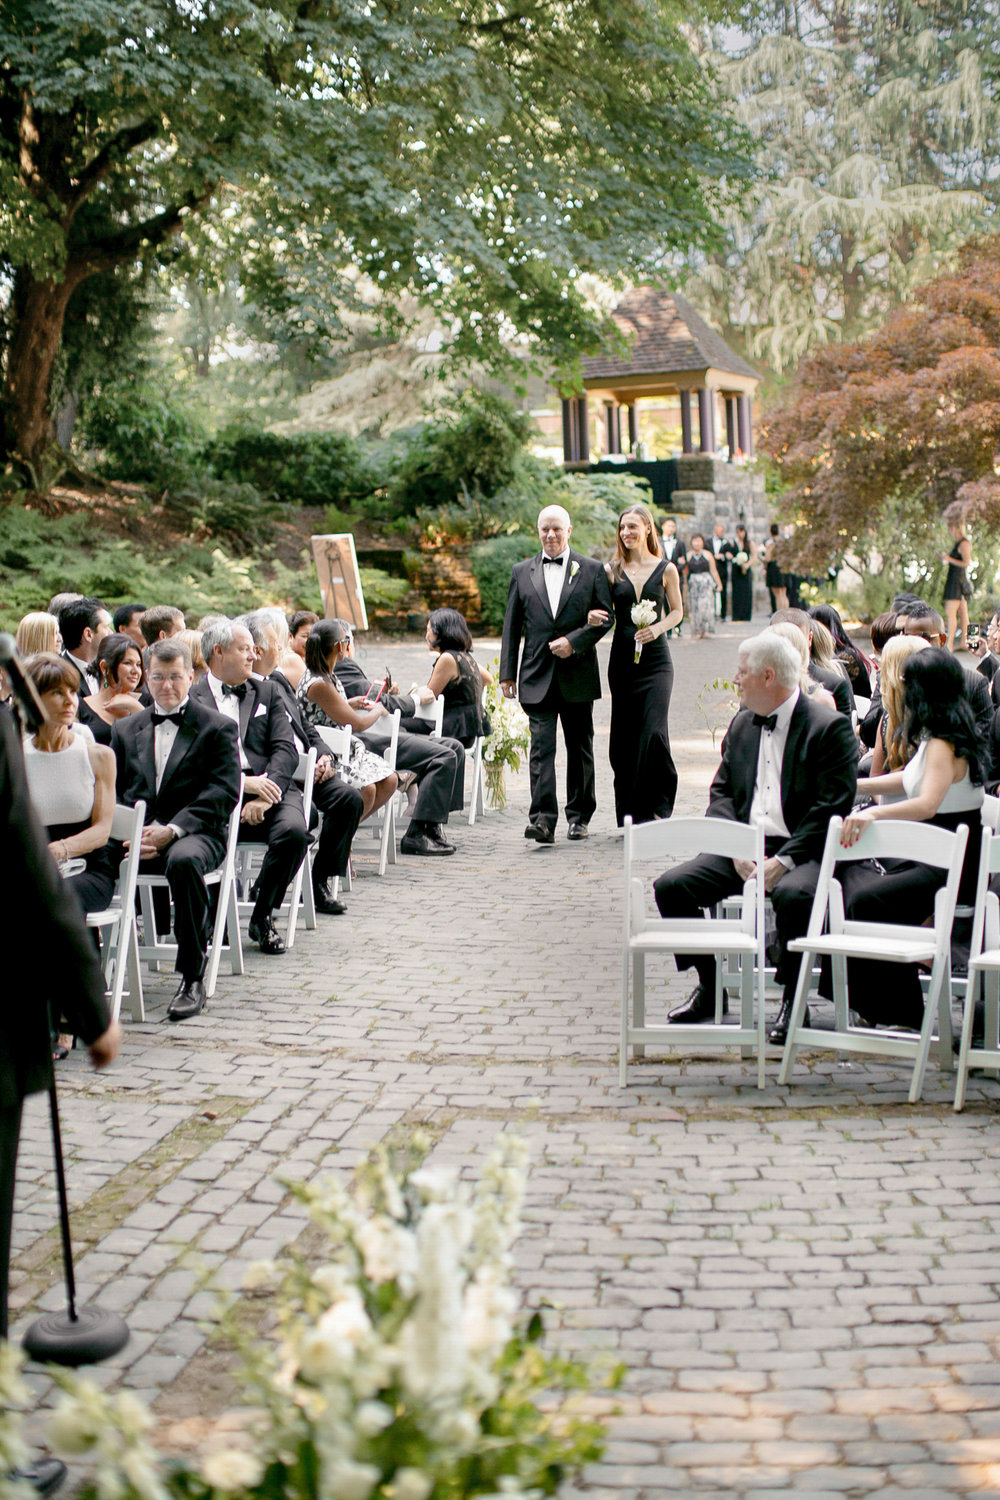 123OutliveCreative_Travel_Photographer_Videographer_Lewis&Clark_Oregon_Elegant_BlackTie_Destination_Wedding.jpg